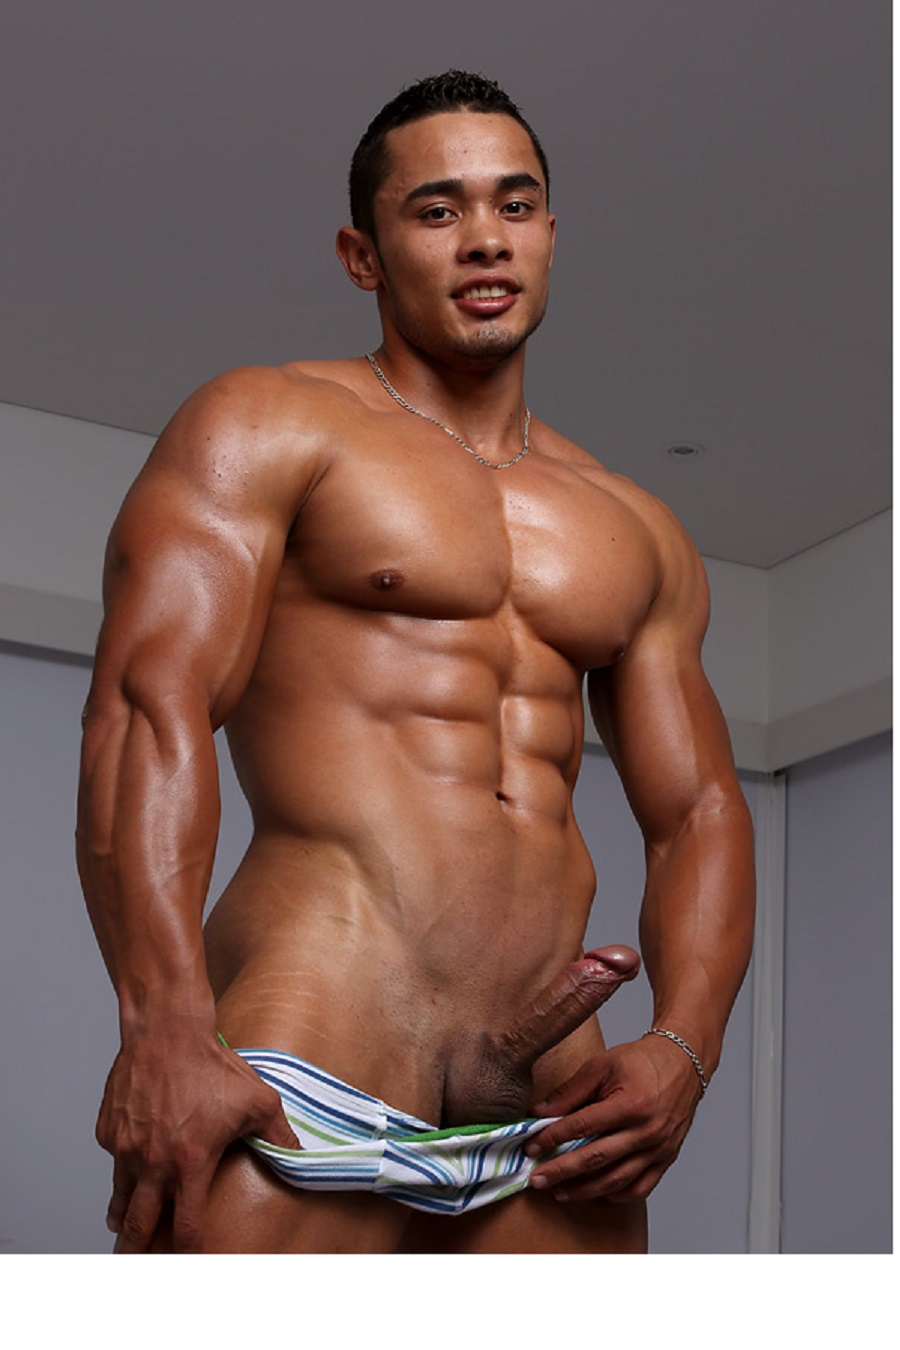 Sportsman Bulge Naked  Bodybuilder Erection-4144